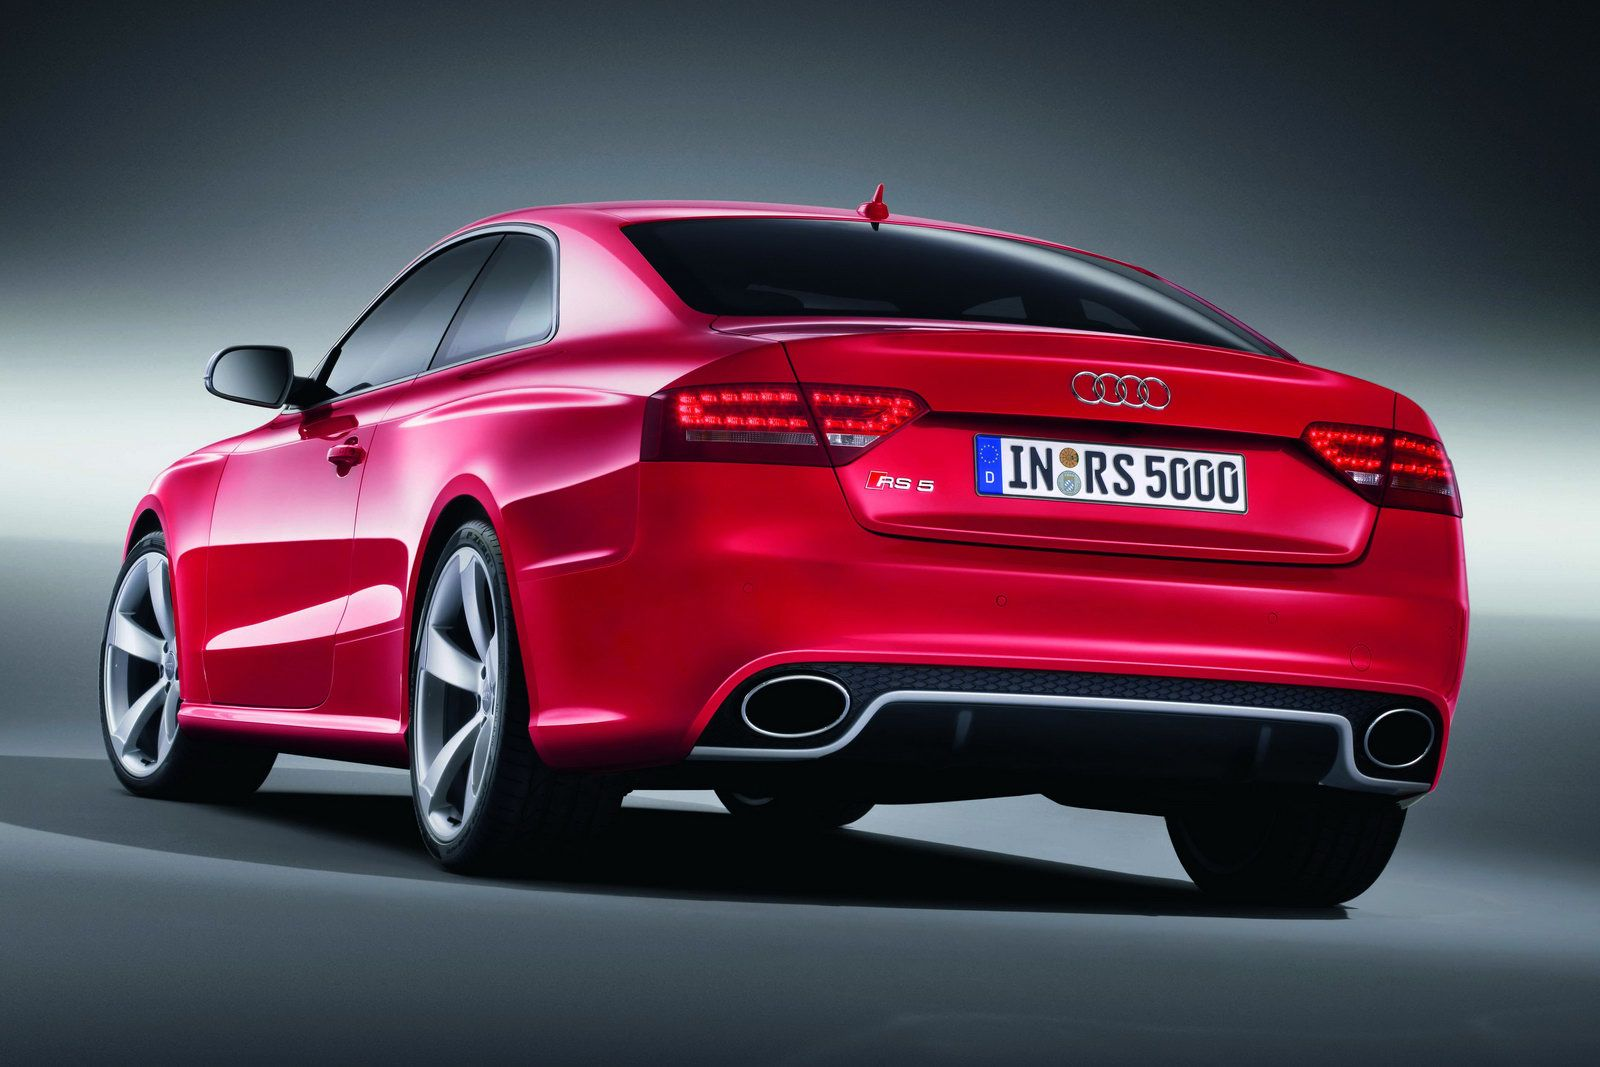 new 2011 audi rs5 coupe officially revealed details and. Black Bedroom Furniture Sets. Home Design Ideas